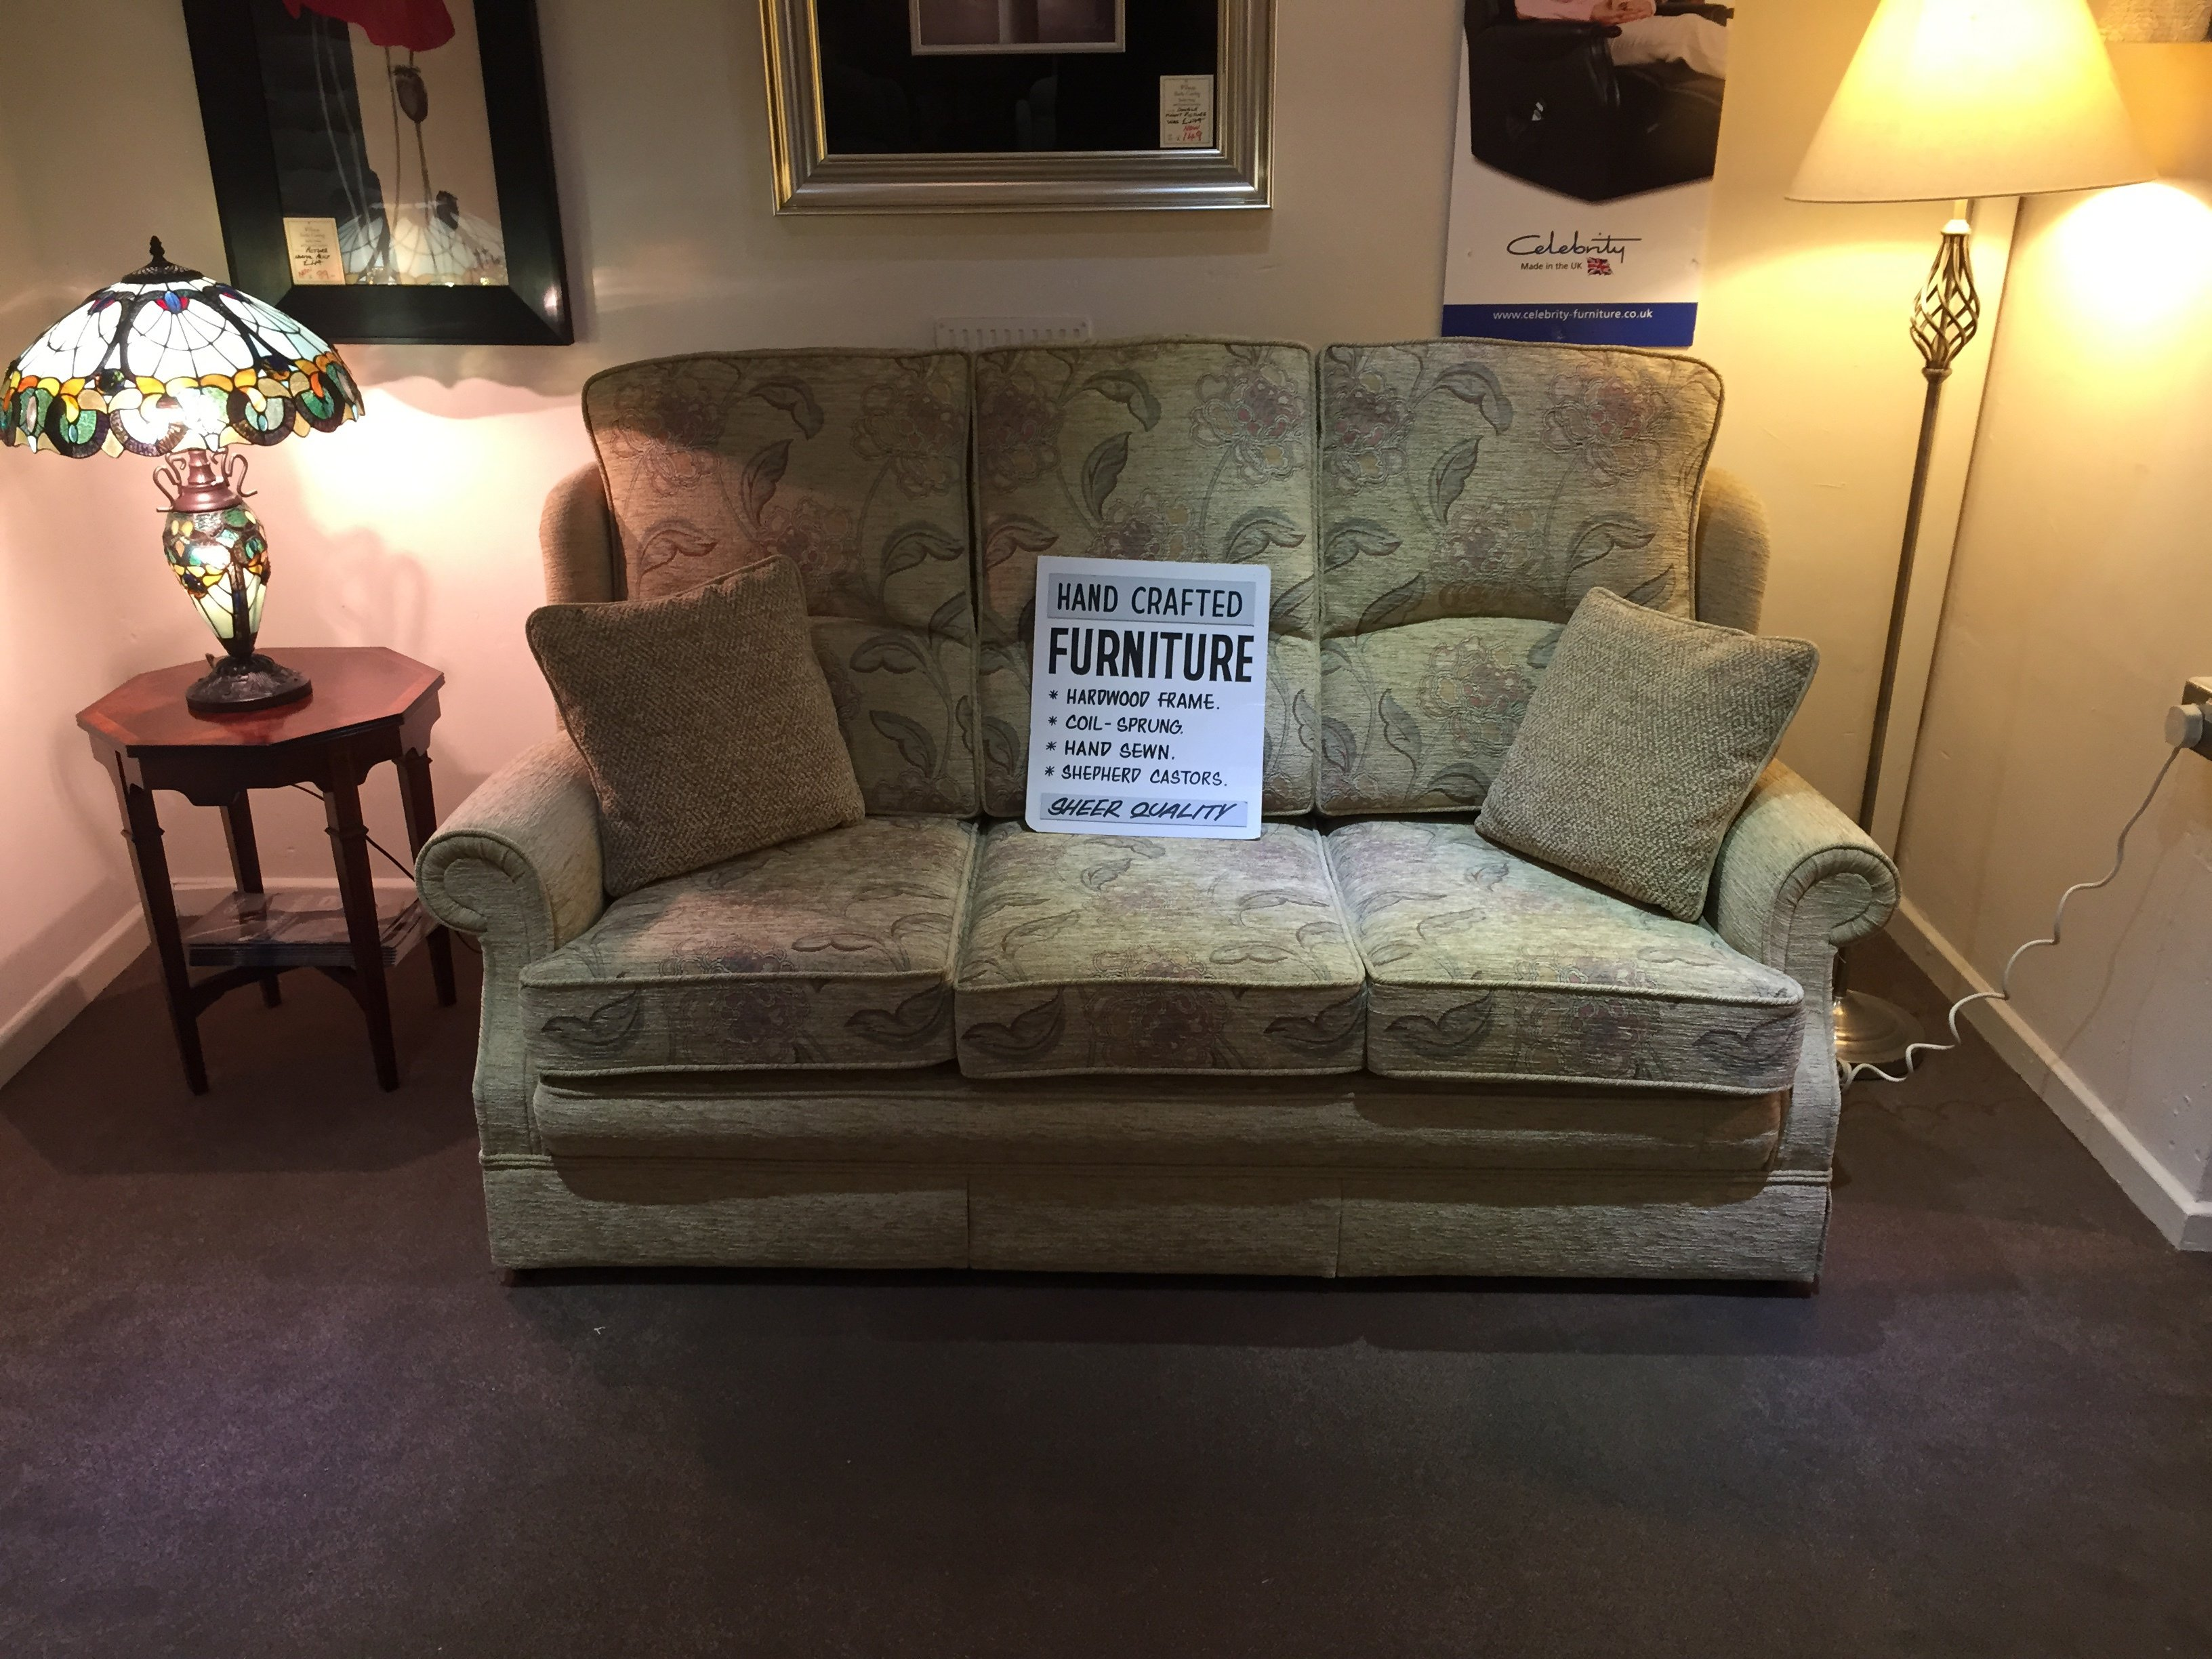 Black and white display sign on a sofa